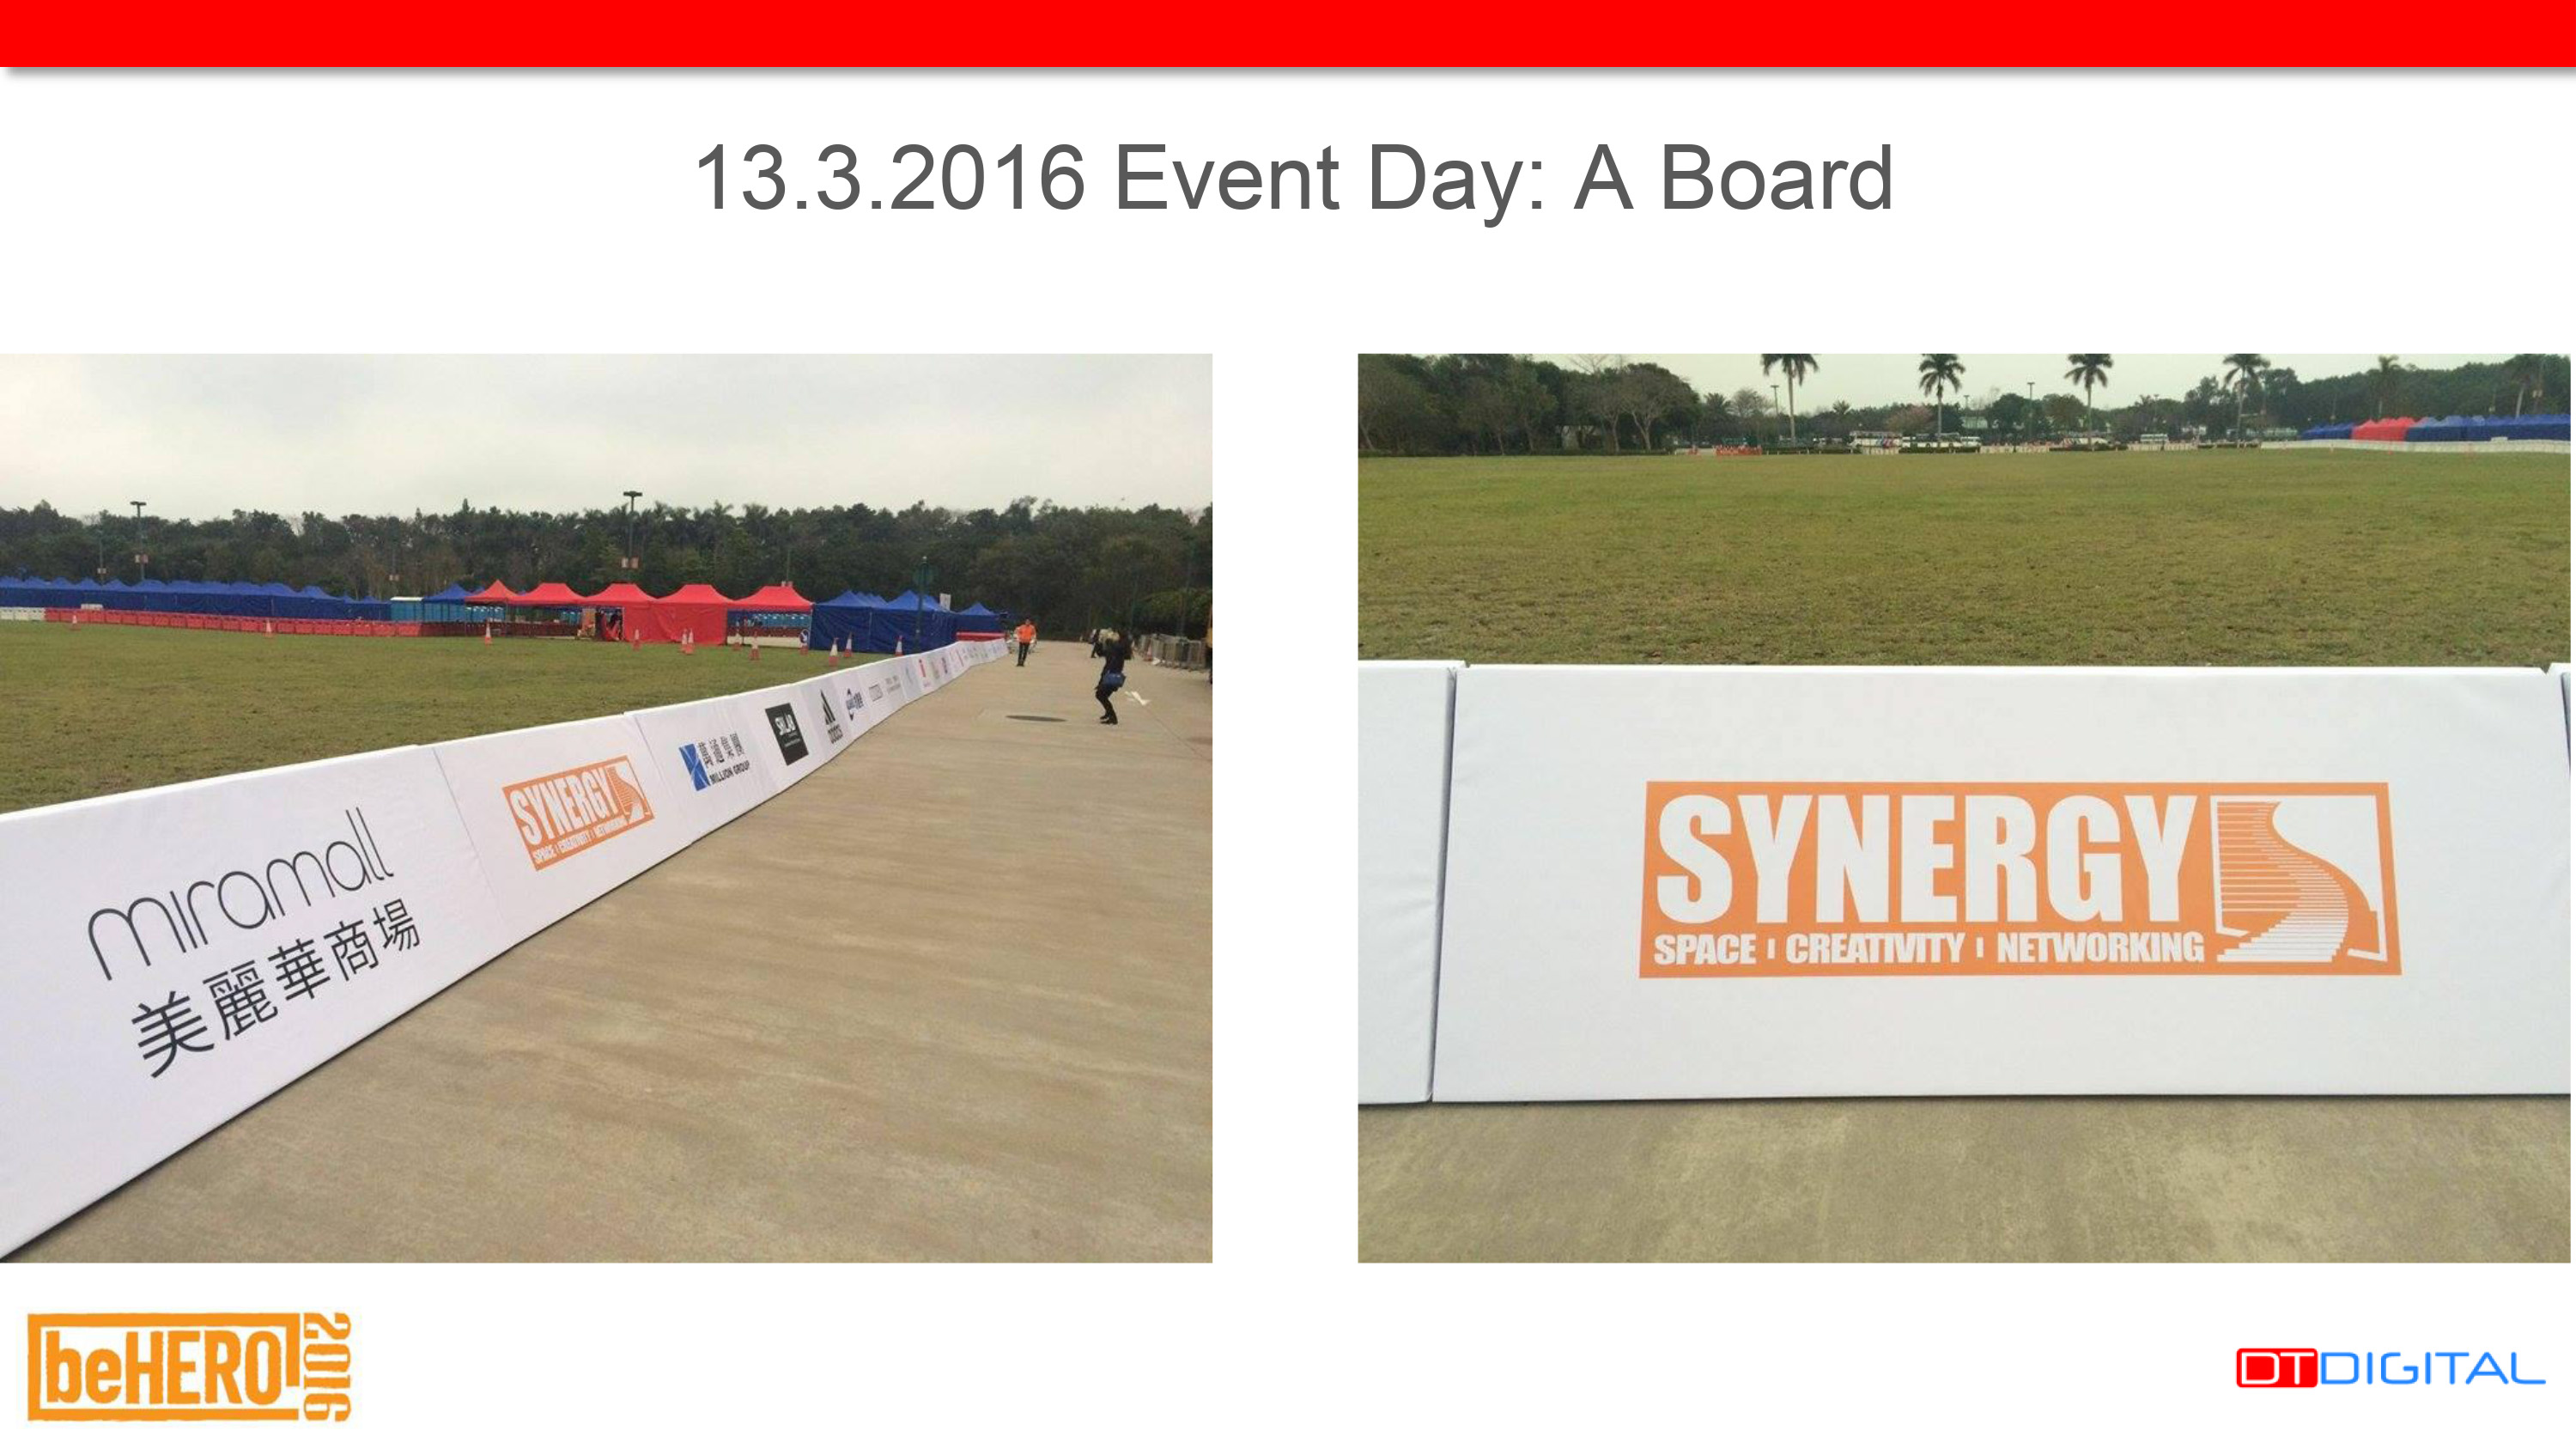 beHERO 2016 sponsor - Synergy (1)-5